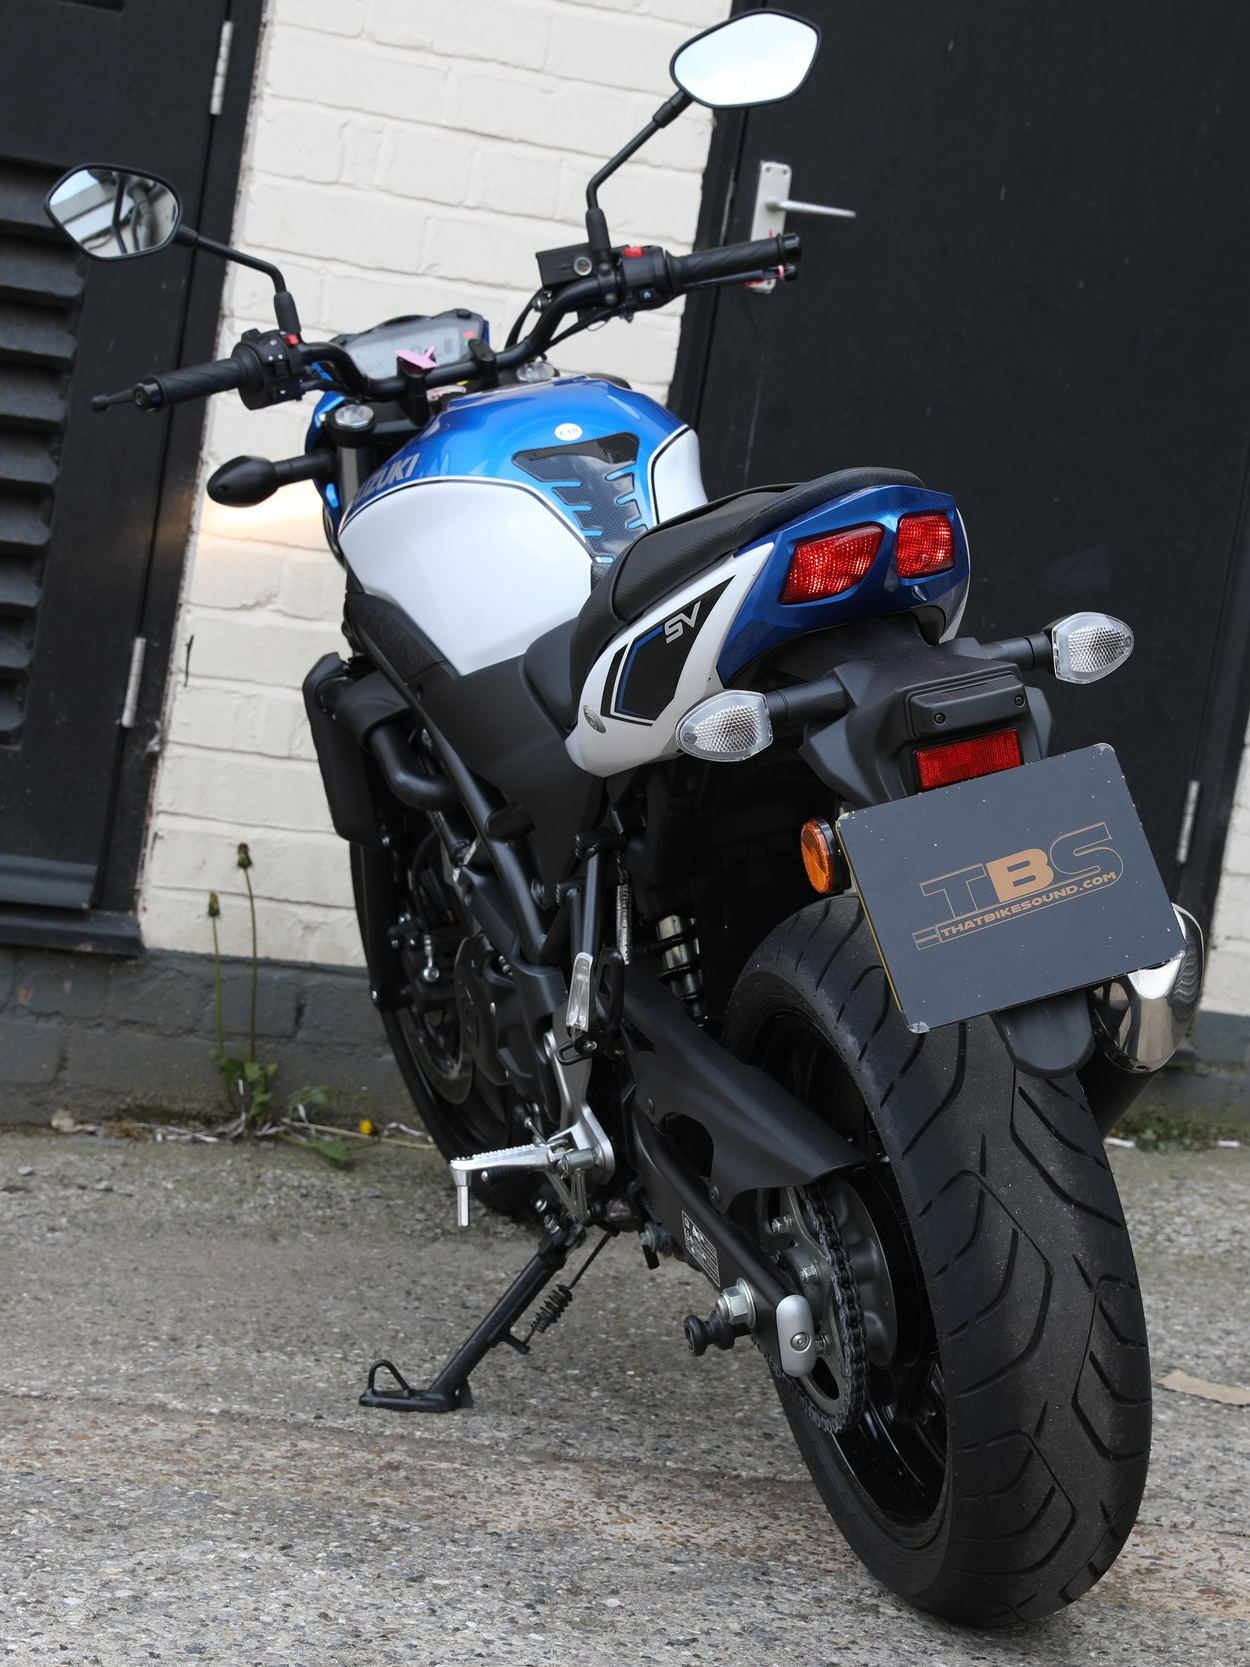 SUZUKI SV650 (2016-ON)